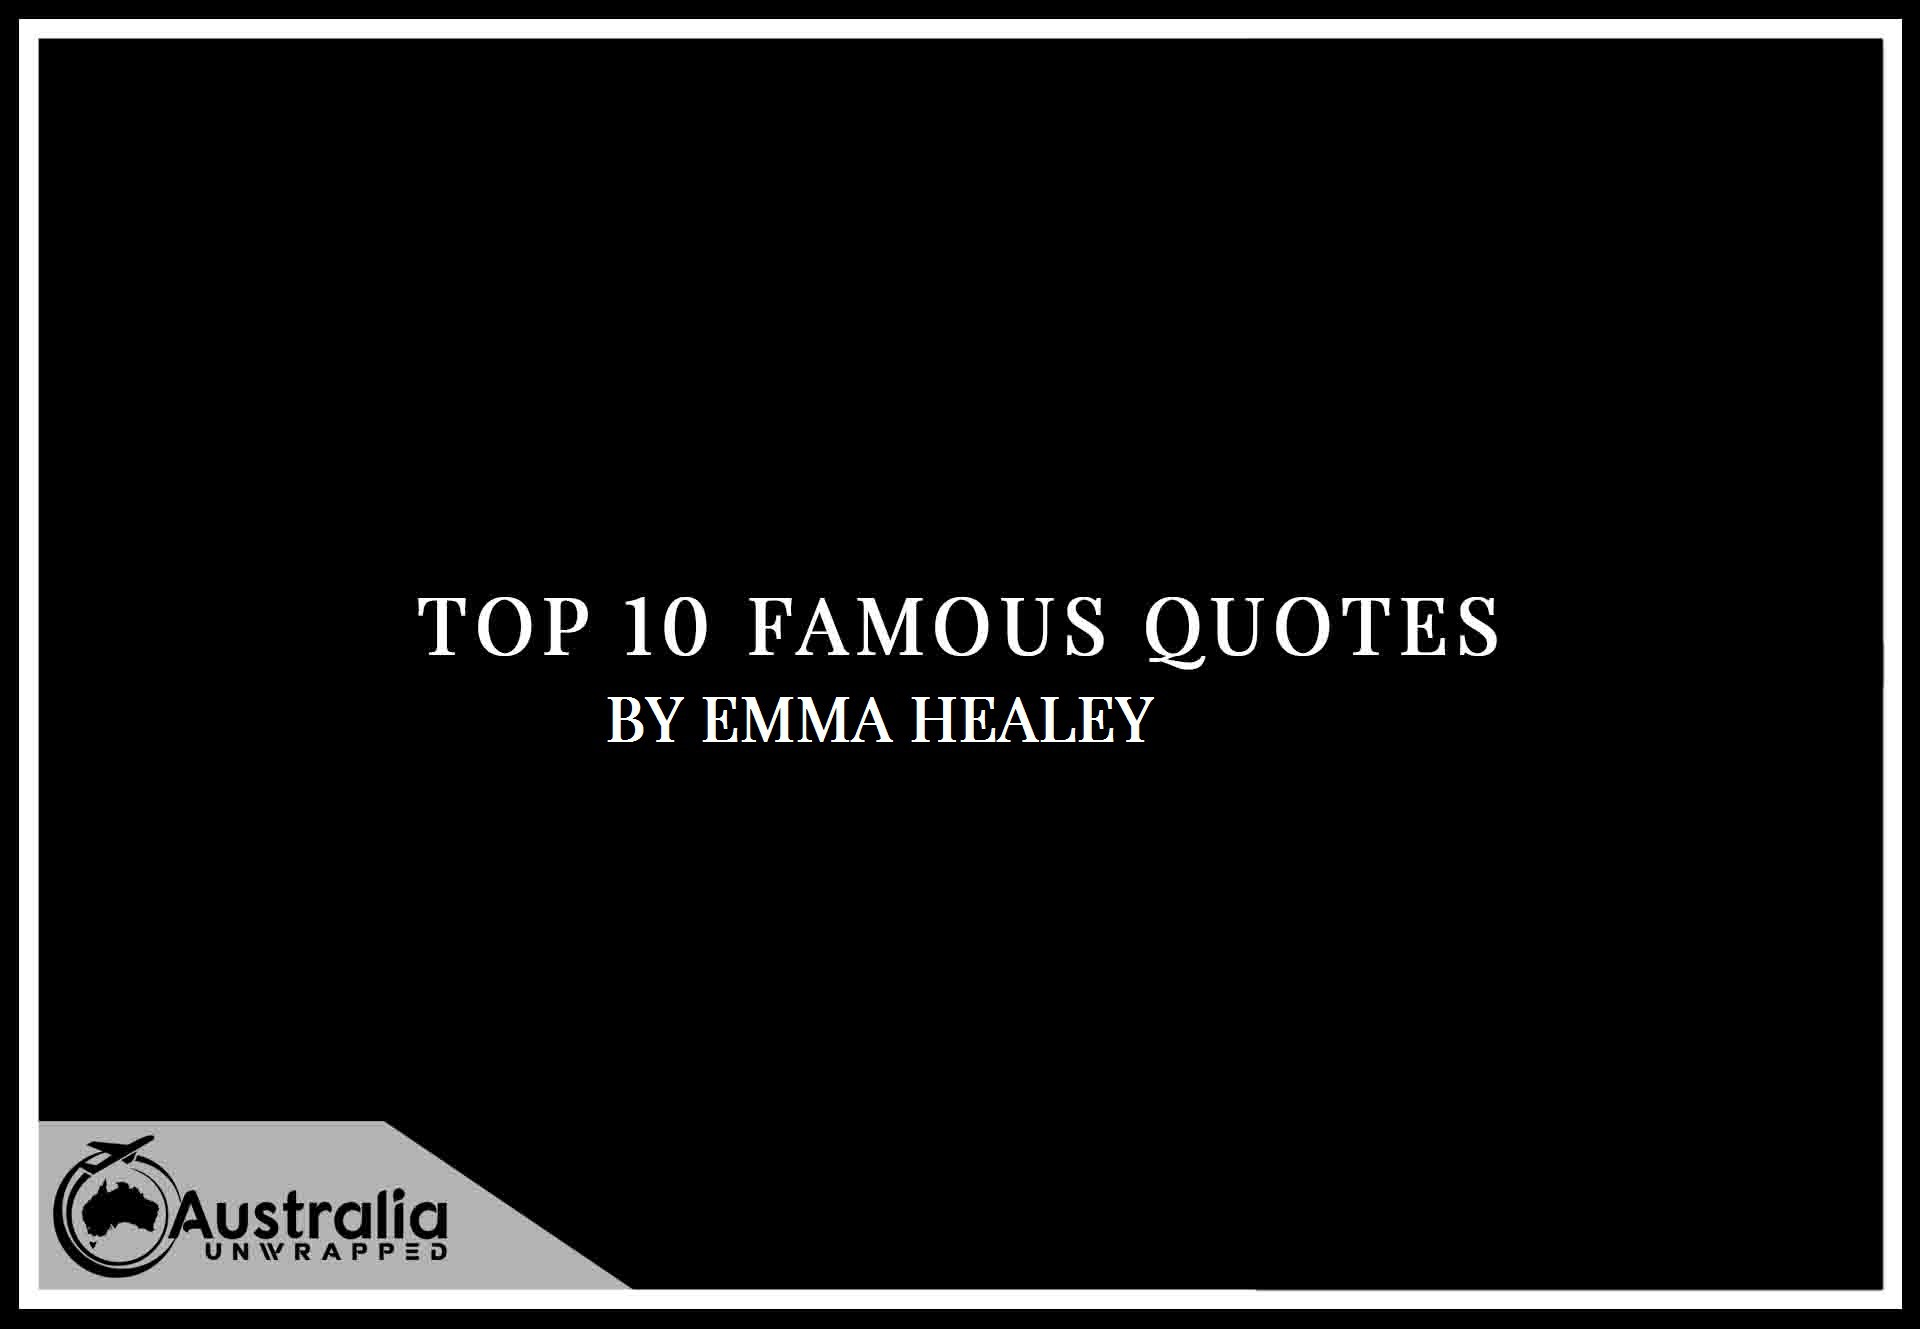 Emma Healey's Top 10 Popular and Famous Quotes